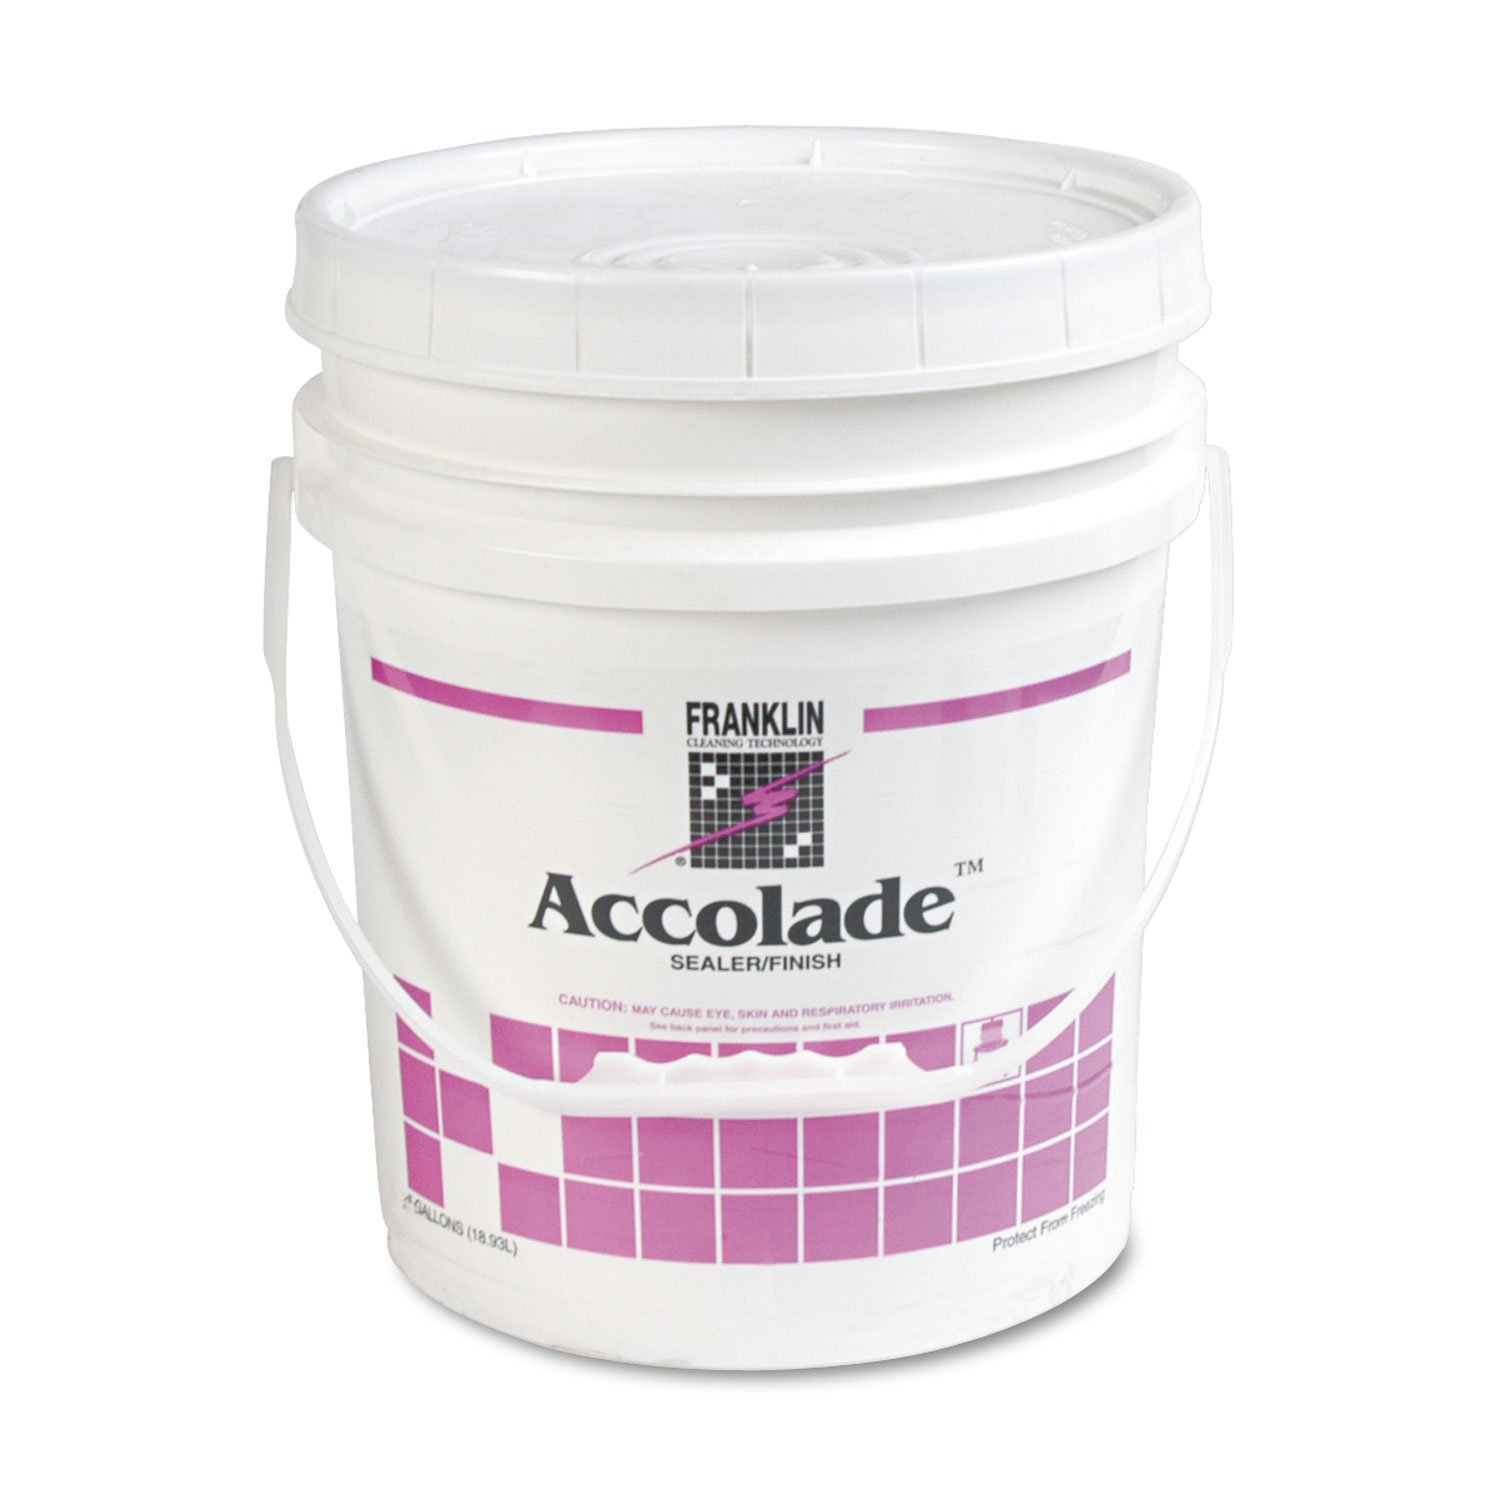 Accolade Floor Sealer, 5 gal Pail by FRNKLN (Catalog Category: Office Maintenance, Janitorial & Lunchroom / Cleaning Supplies)